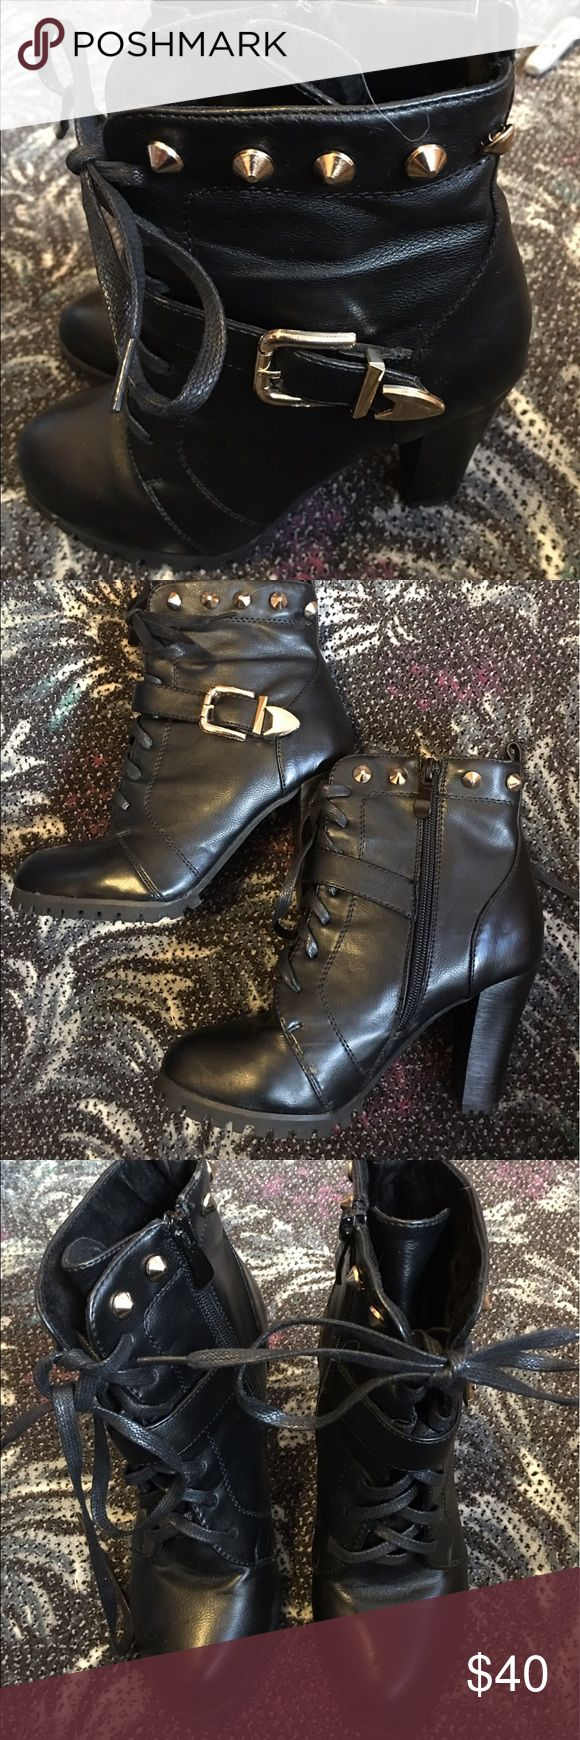 Studded combat boots size 5.5 worn once Small scuff on one shoe low platform style soles with high heels. Zippers and laces edgy and super cute. Faux leather Shoes Ankle Boots & Booties